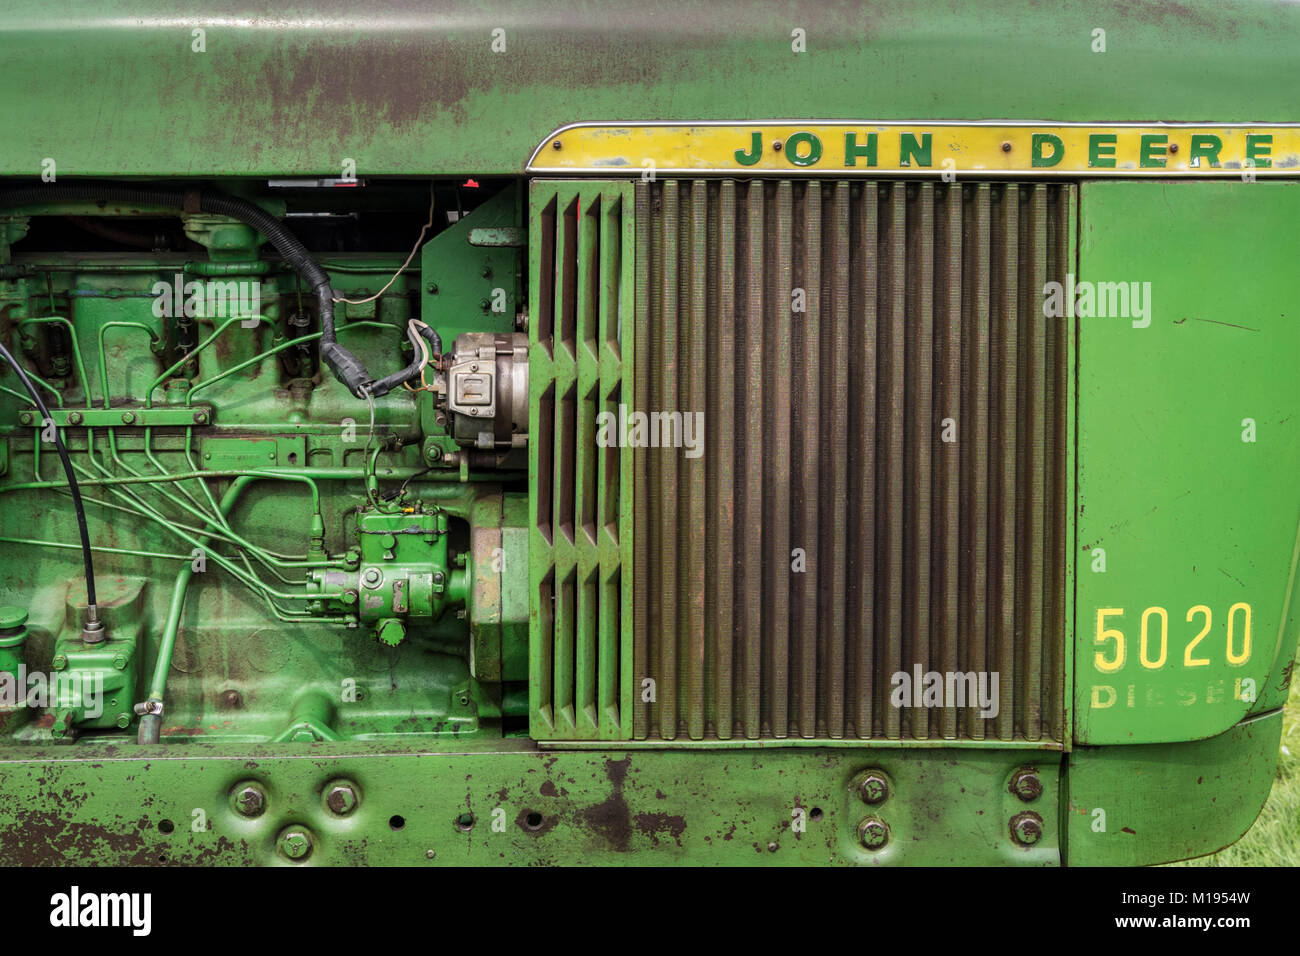 Side view detail of a vintage John Deere tractor, faded and worn green paint with yellow and green badge. - Stock Image